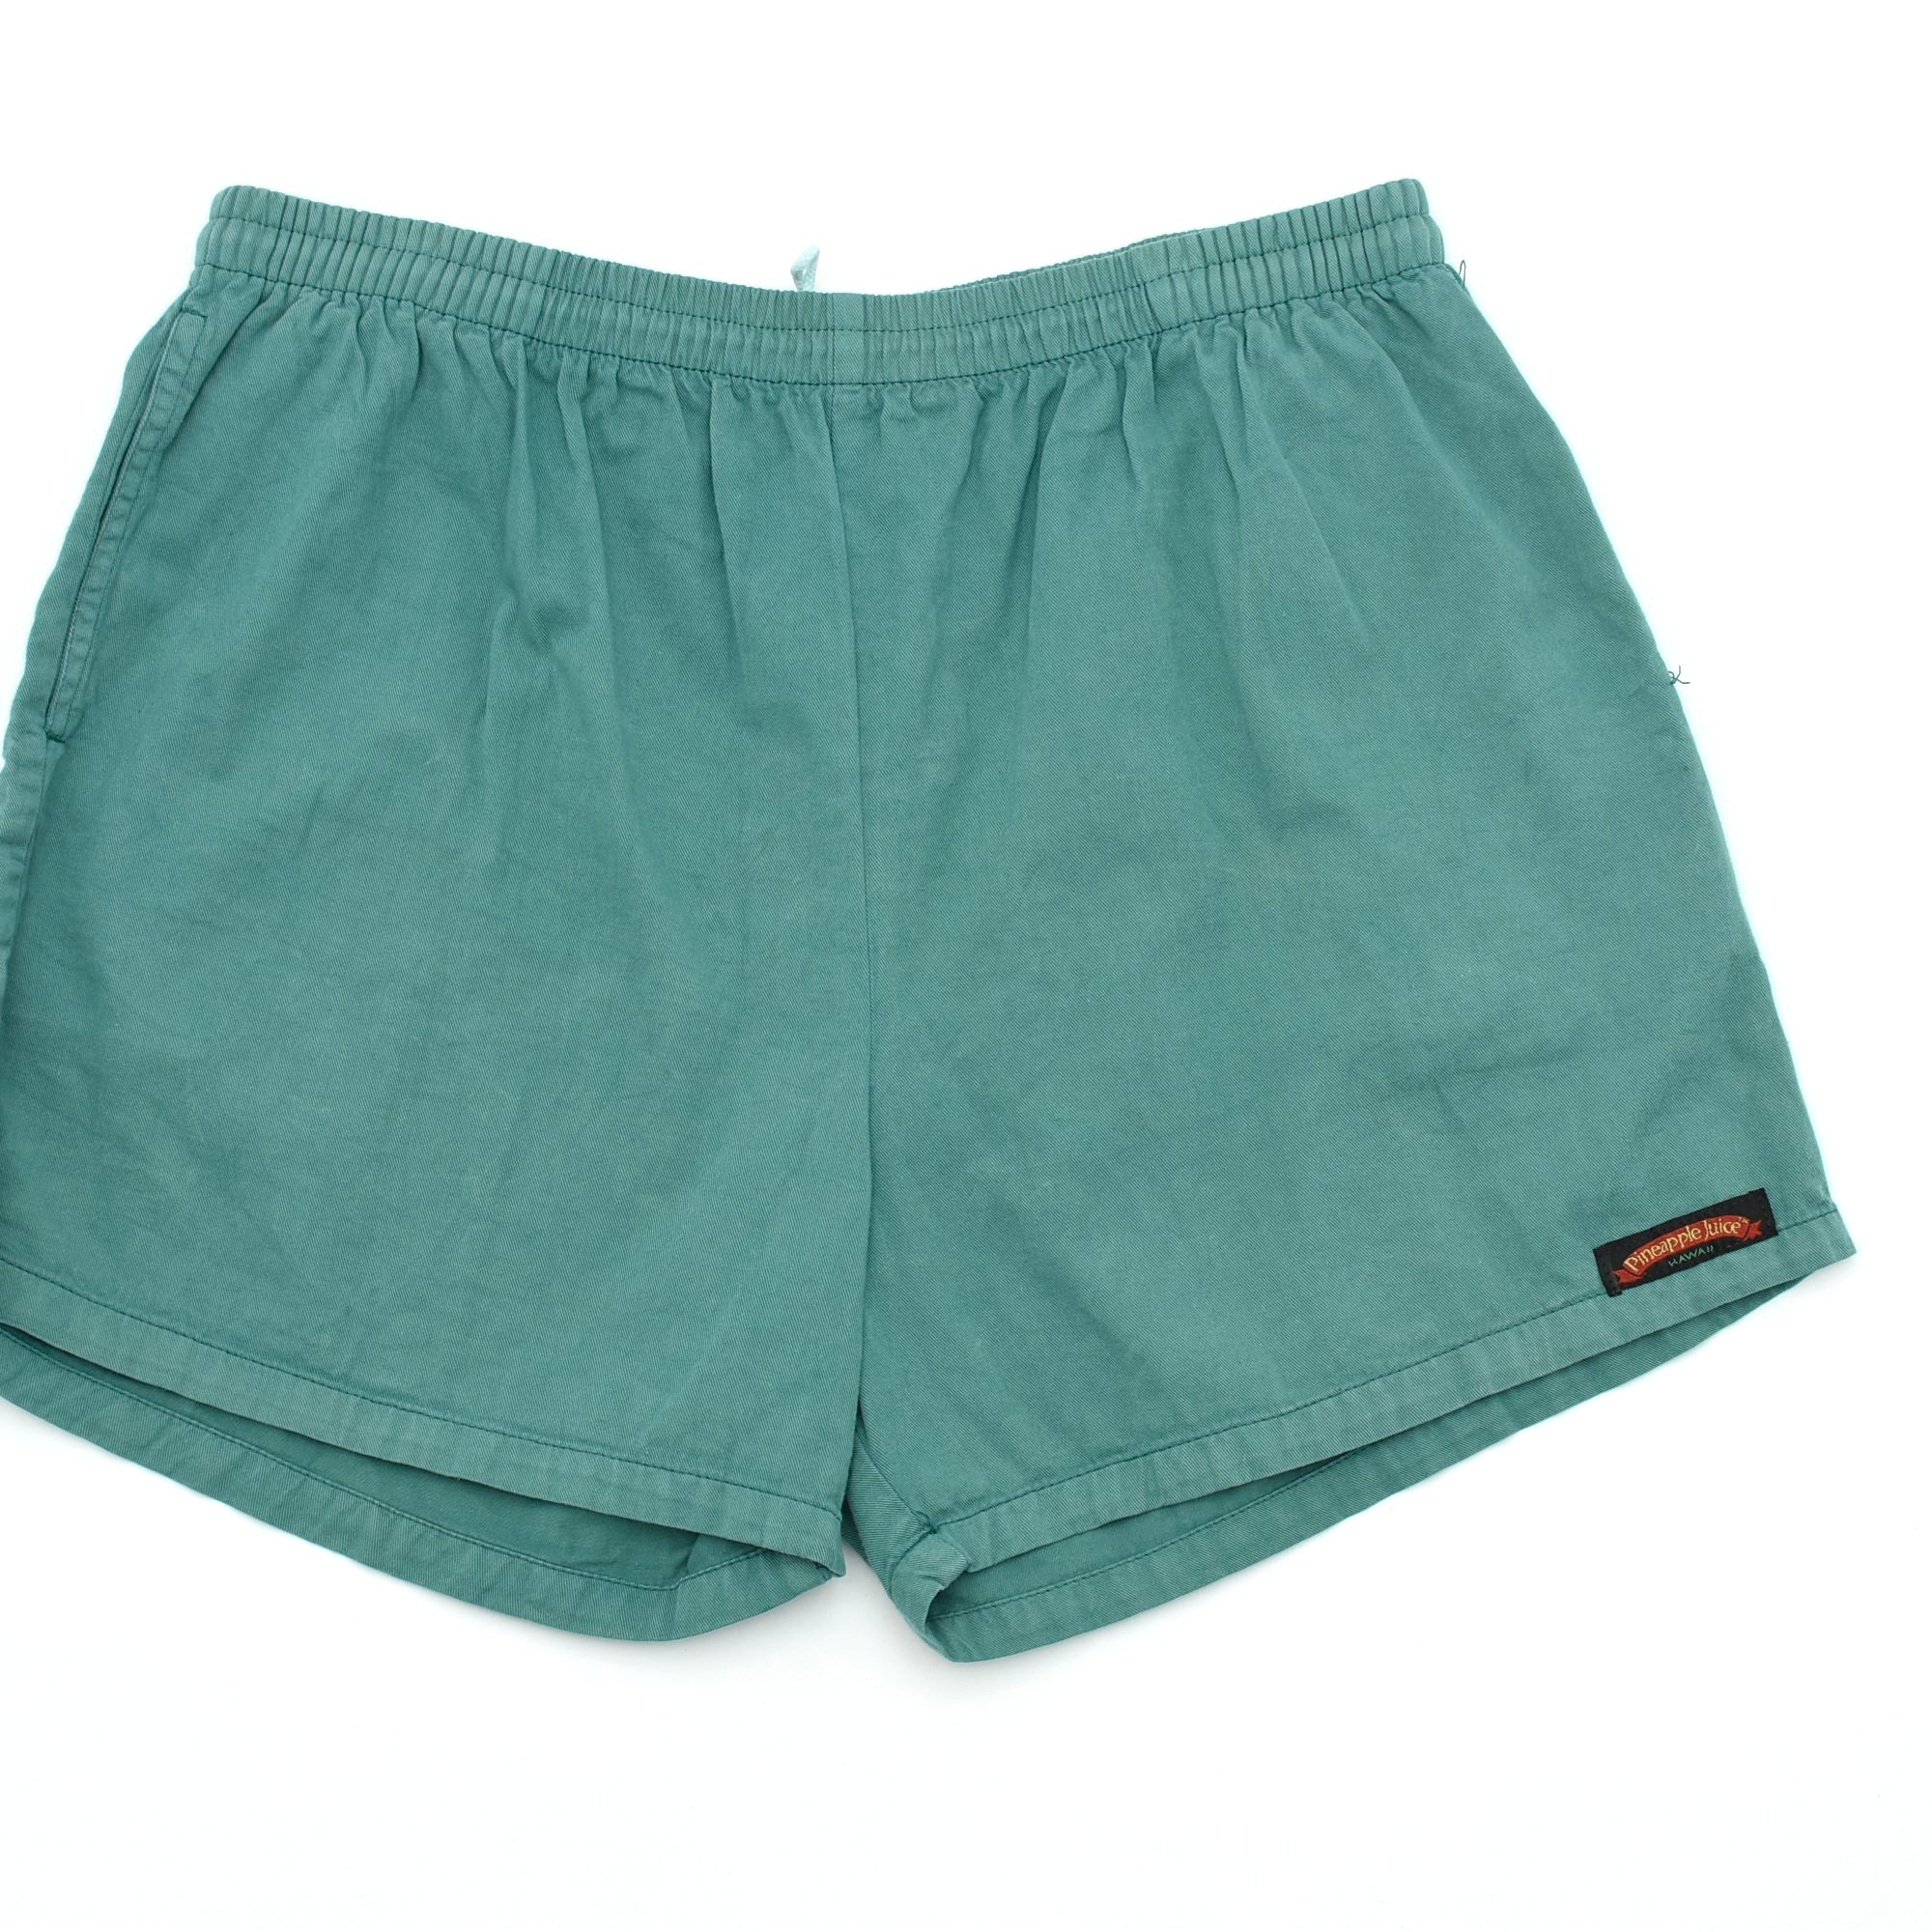 90's Pineapple Juice cotton color shorts Made in Hawaii